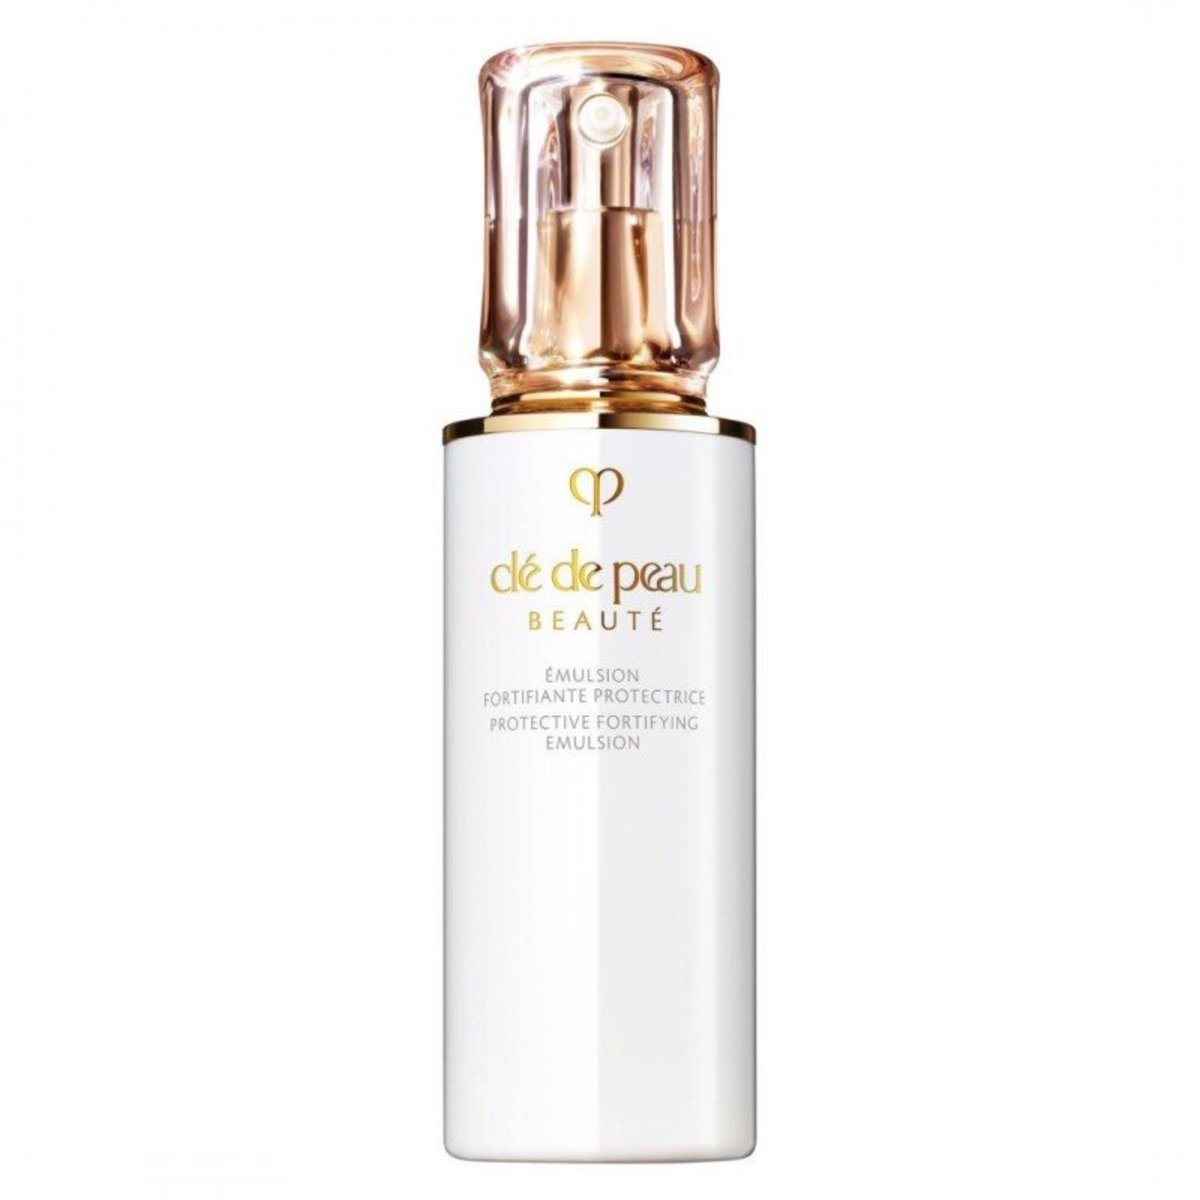 CLE DE PEAU BEAUTE PROTECTIVE FORTIFYING EMULSION N  125ml  new [parallel import]